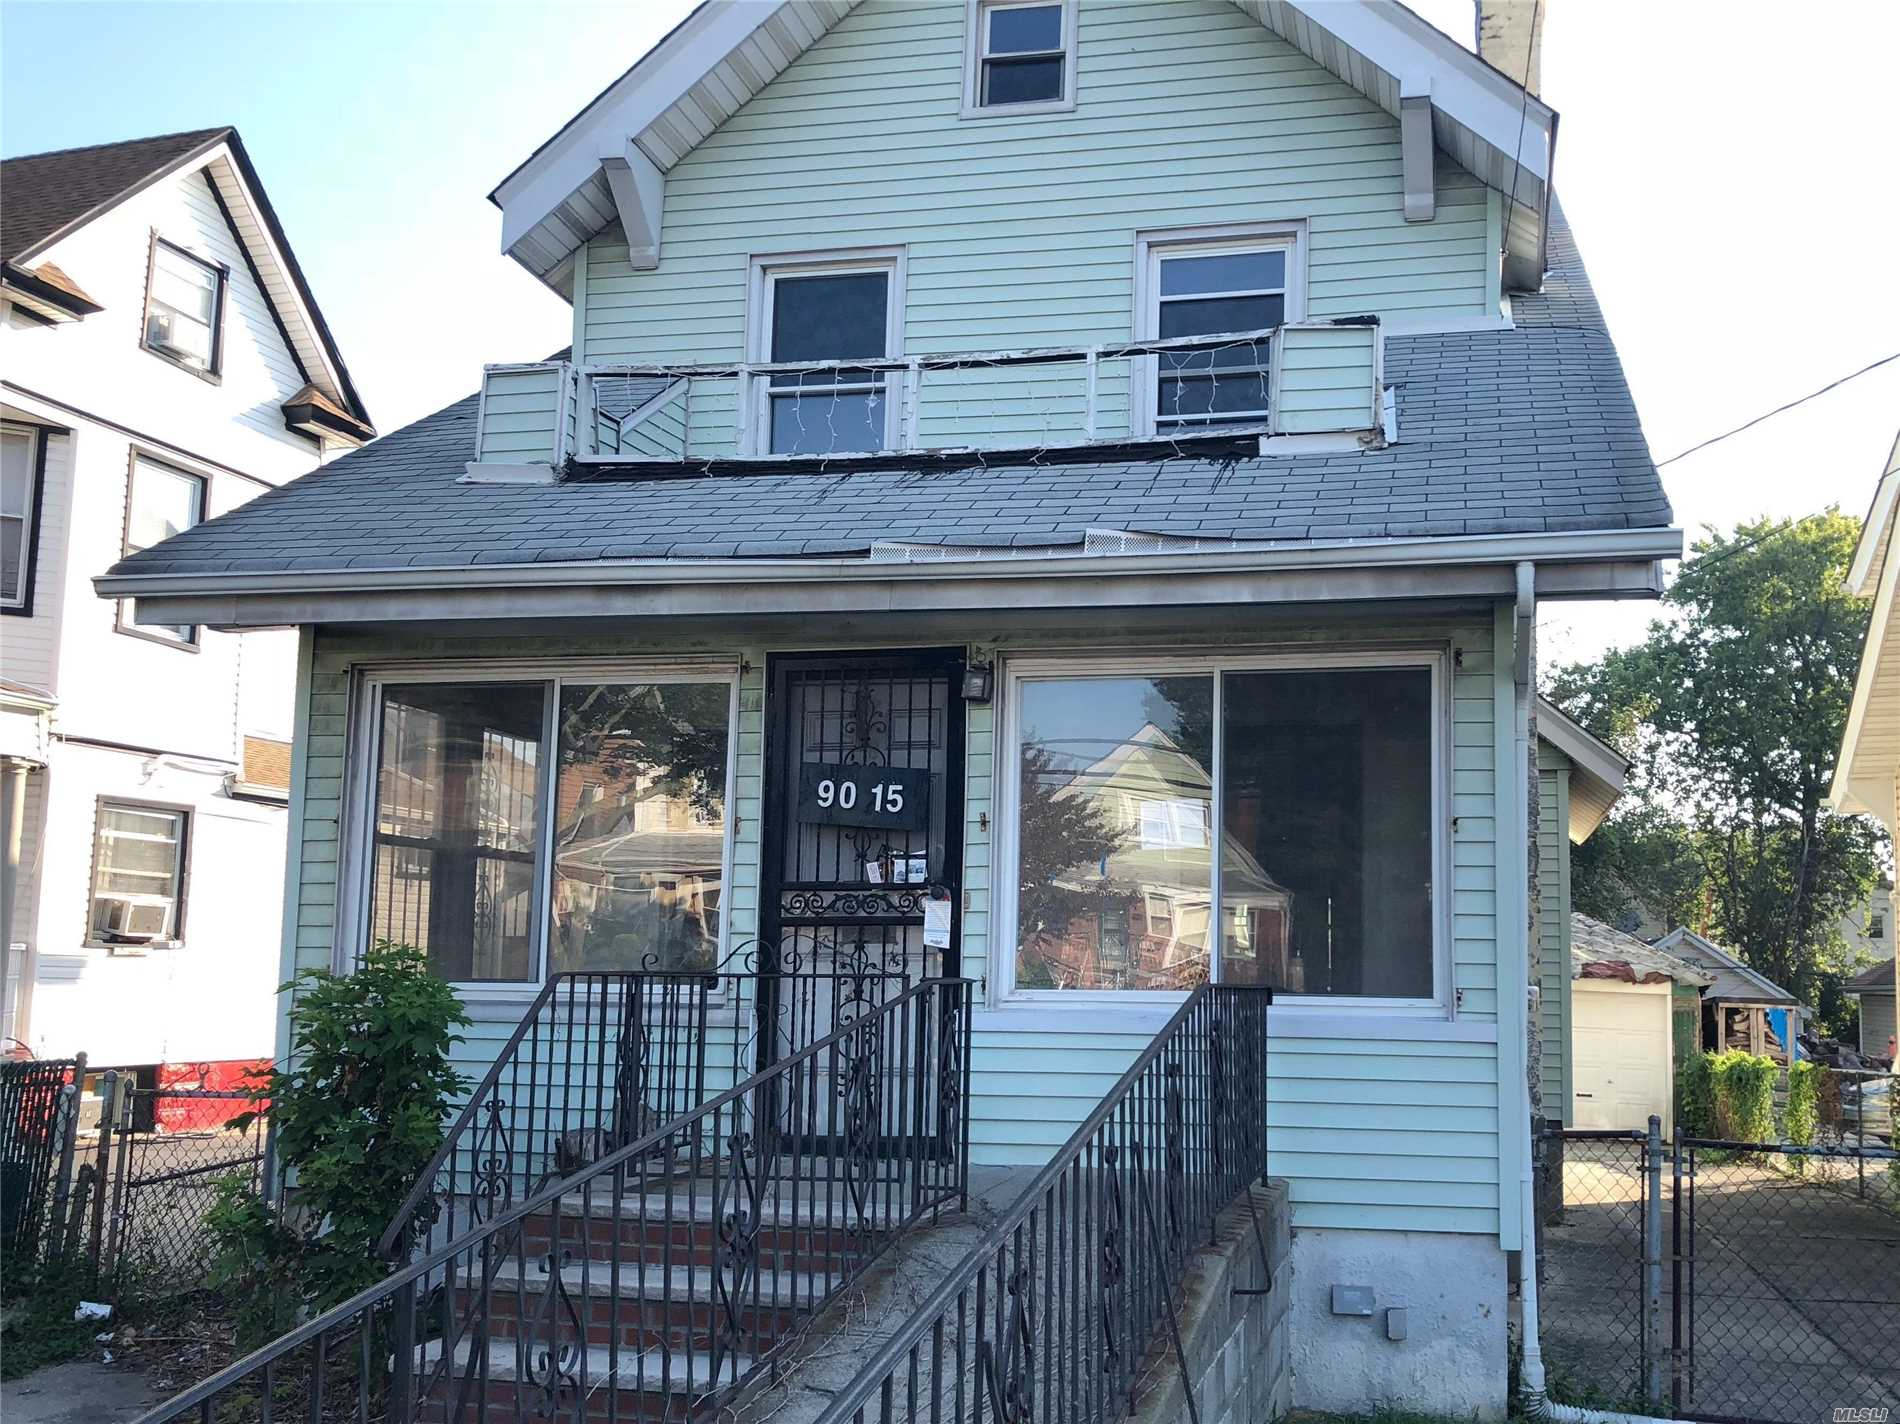 Large Colonial With 3 Bedrooms And 1.5 Bath. Enclosed Porch, Large Private Driveway And A Detached Garage. Close To Shopping, Transportation And Major Roadways.